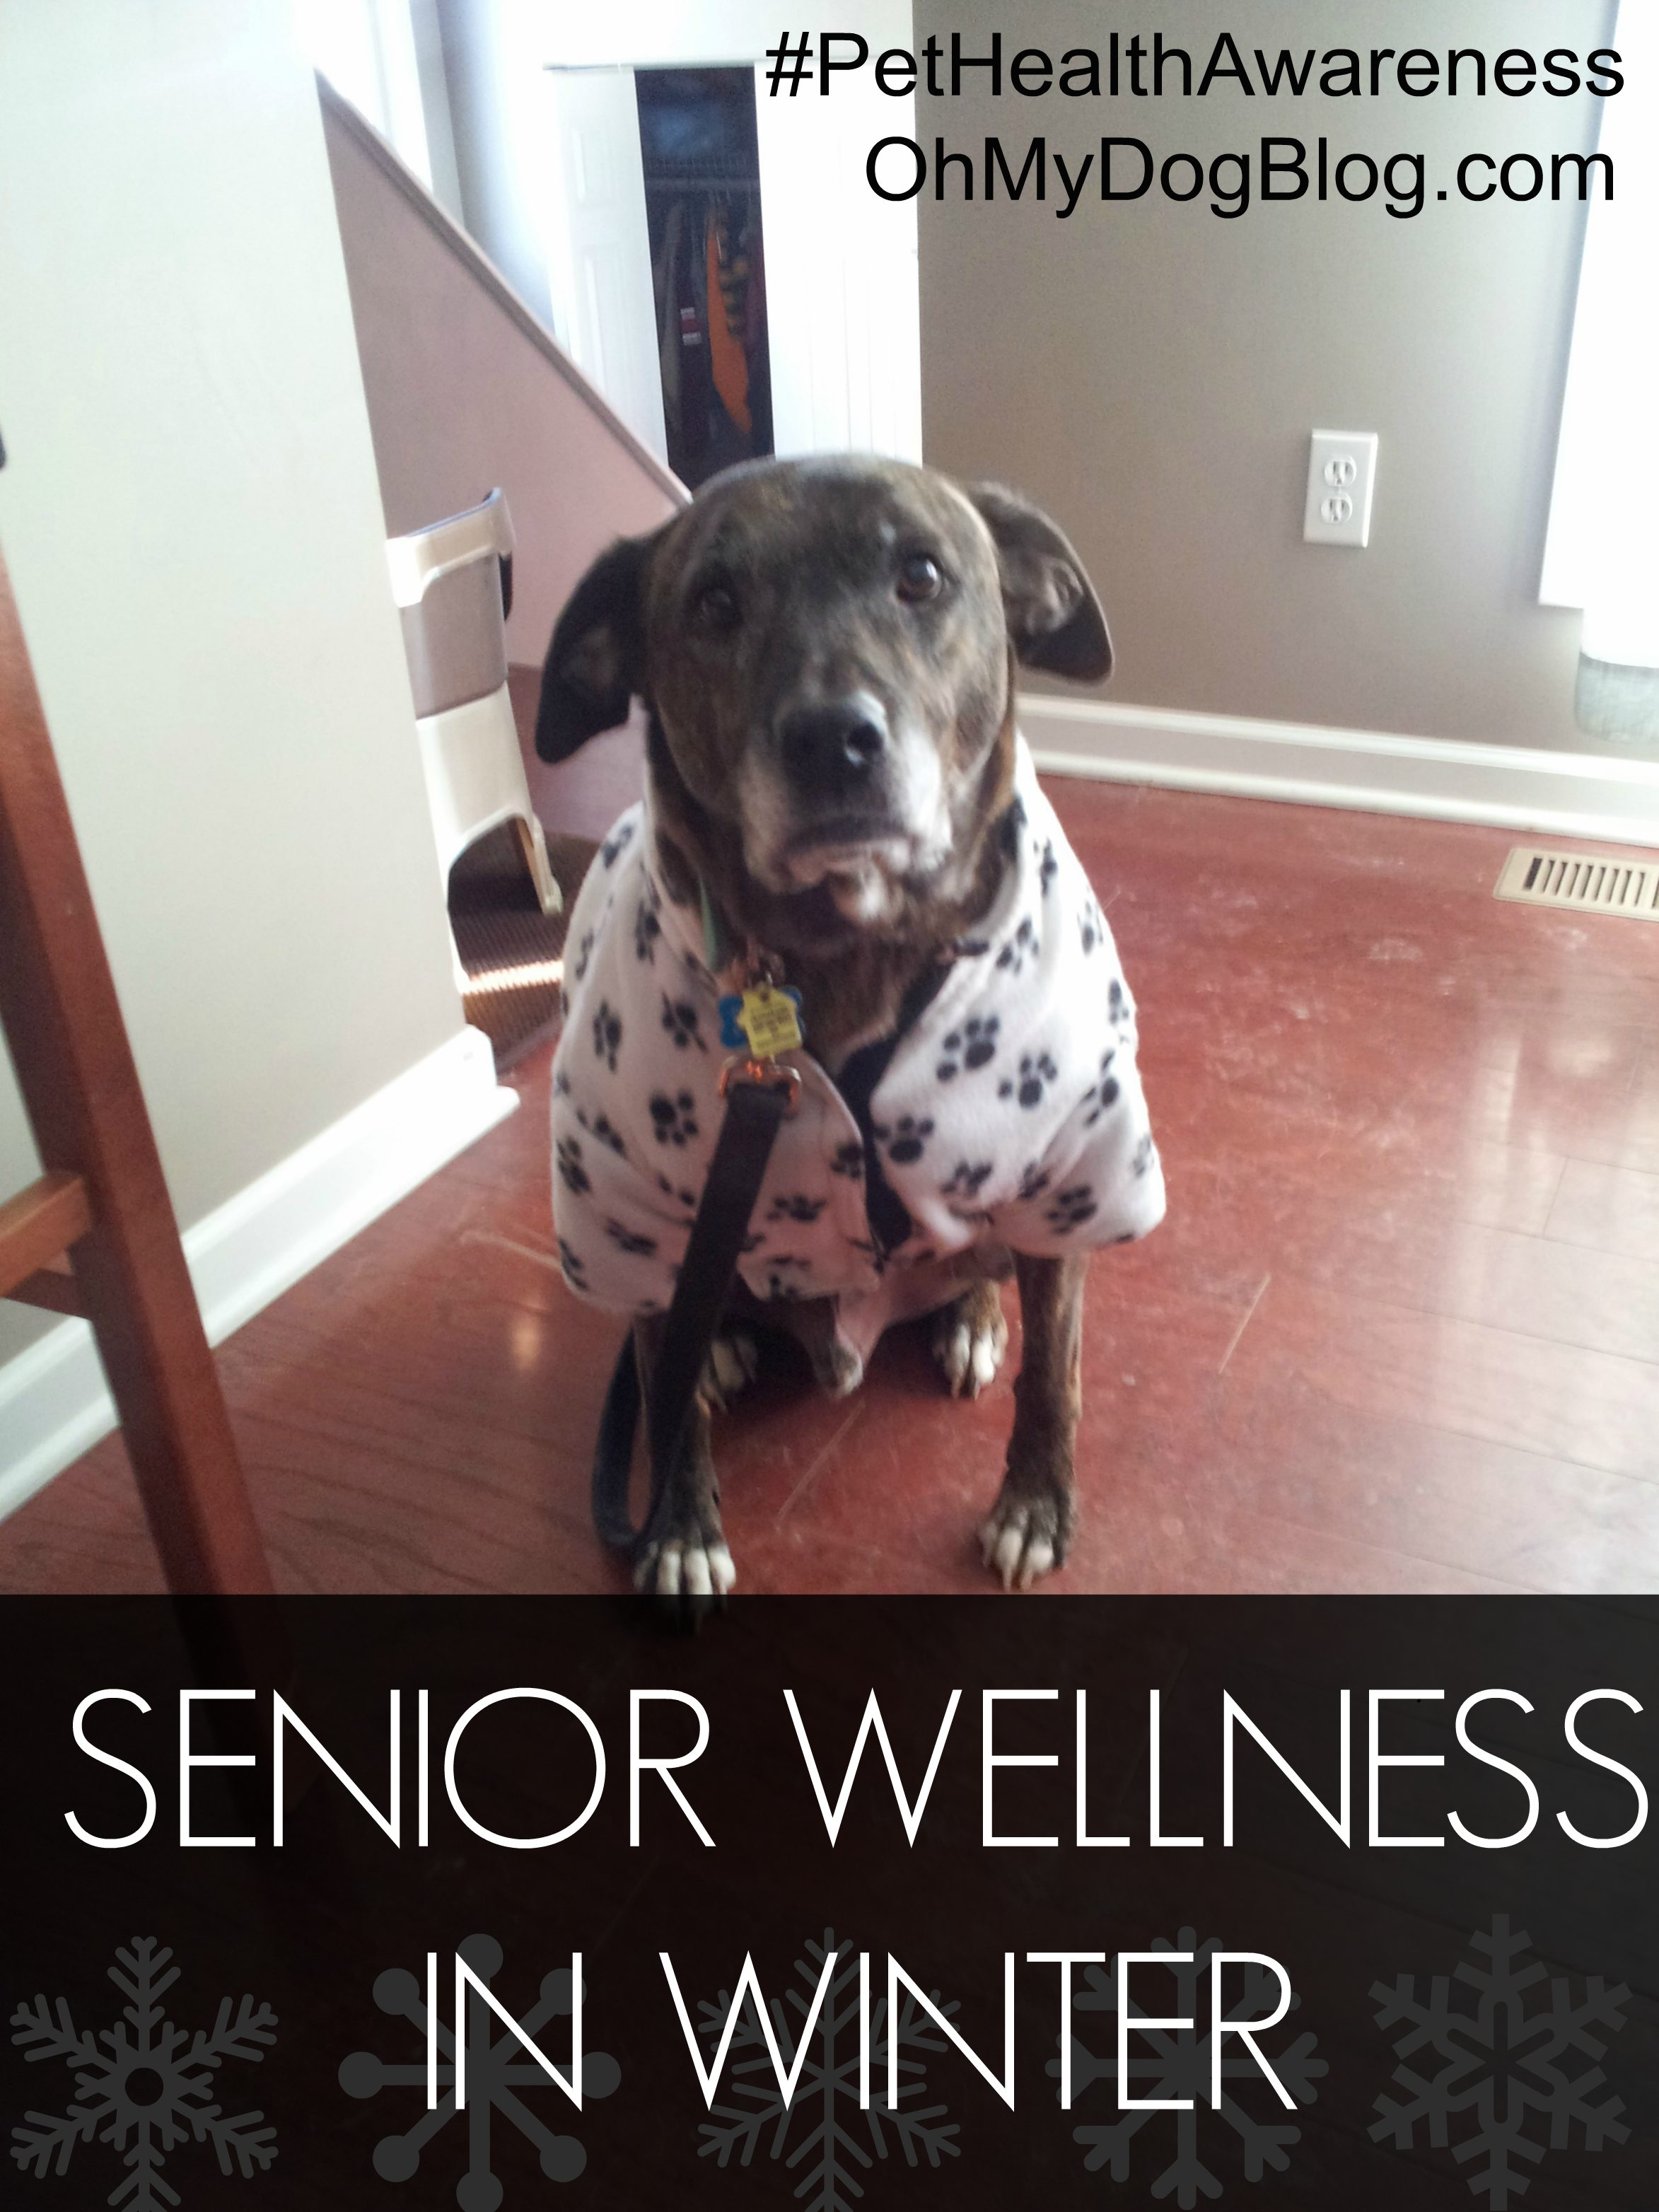 Senior Wellness in Winter #PetHealthAwareness